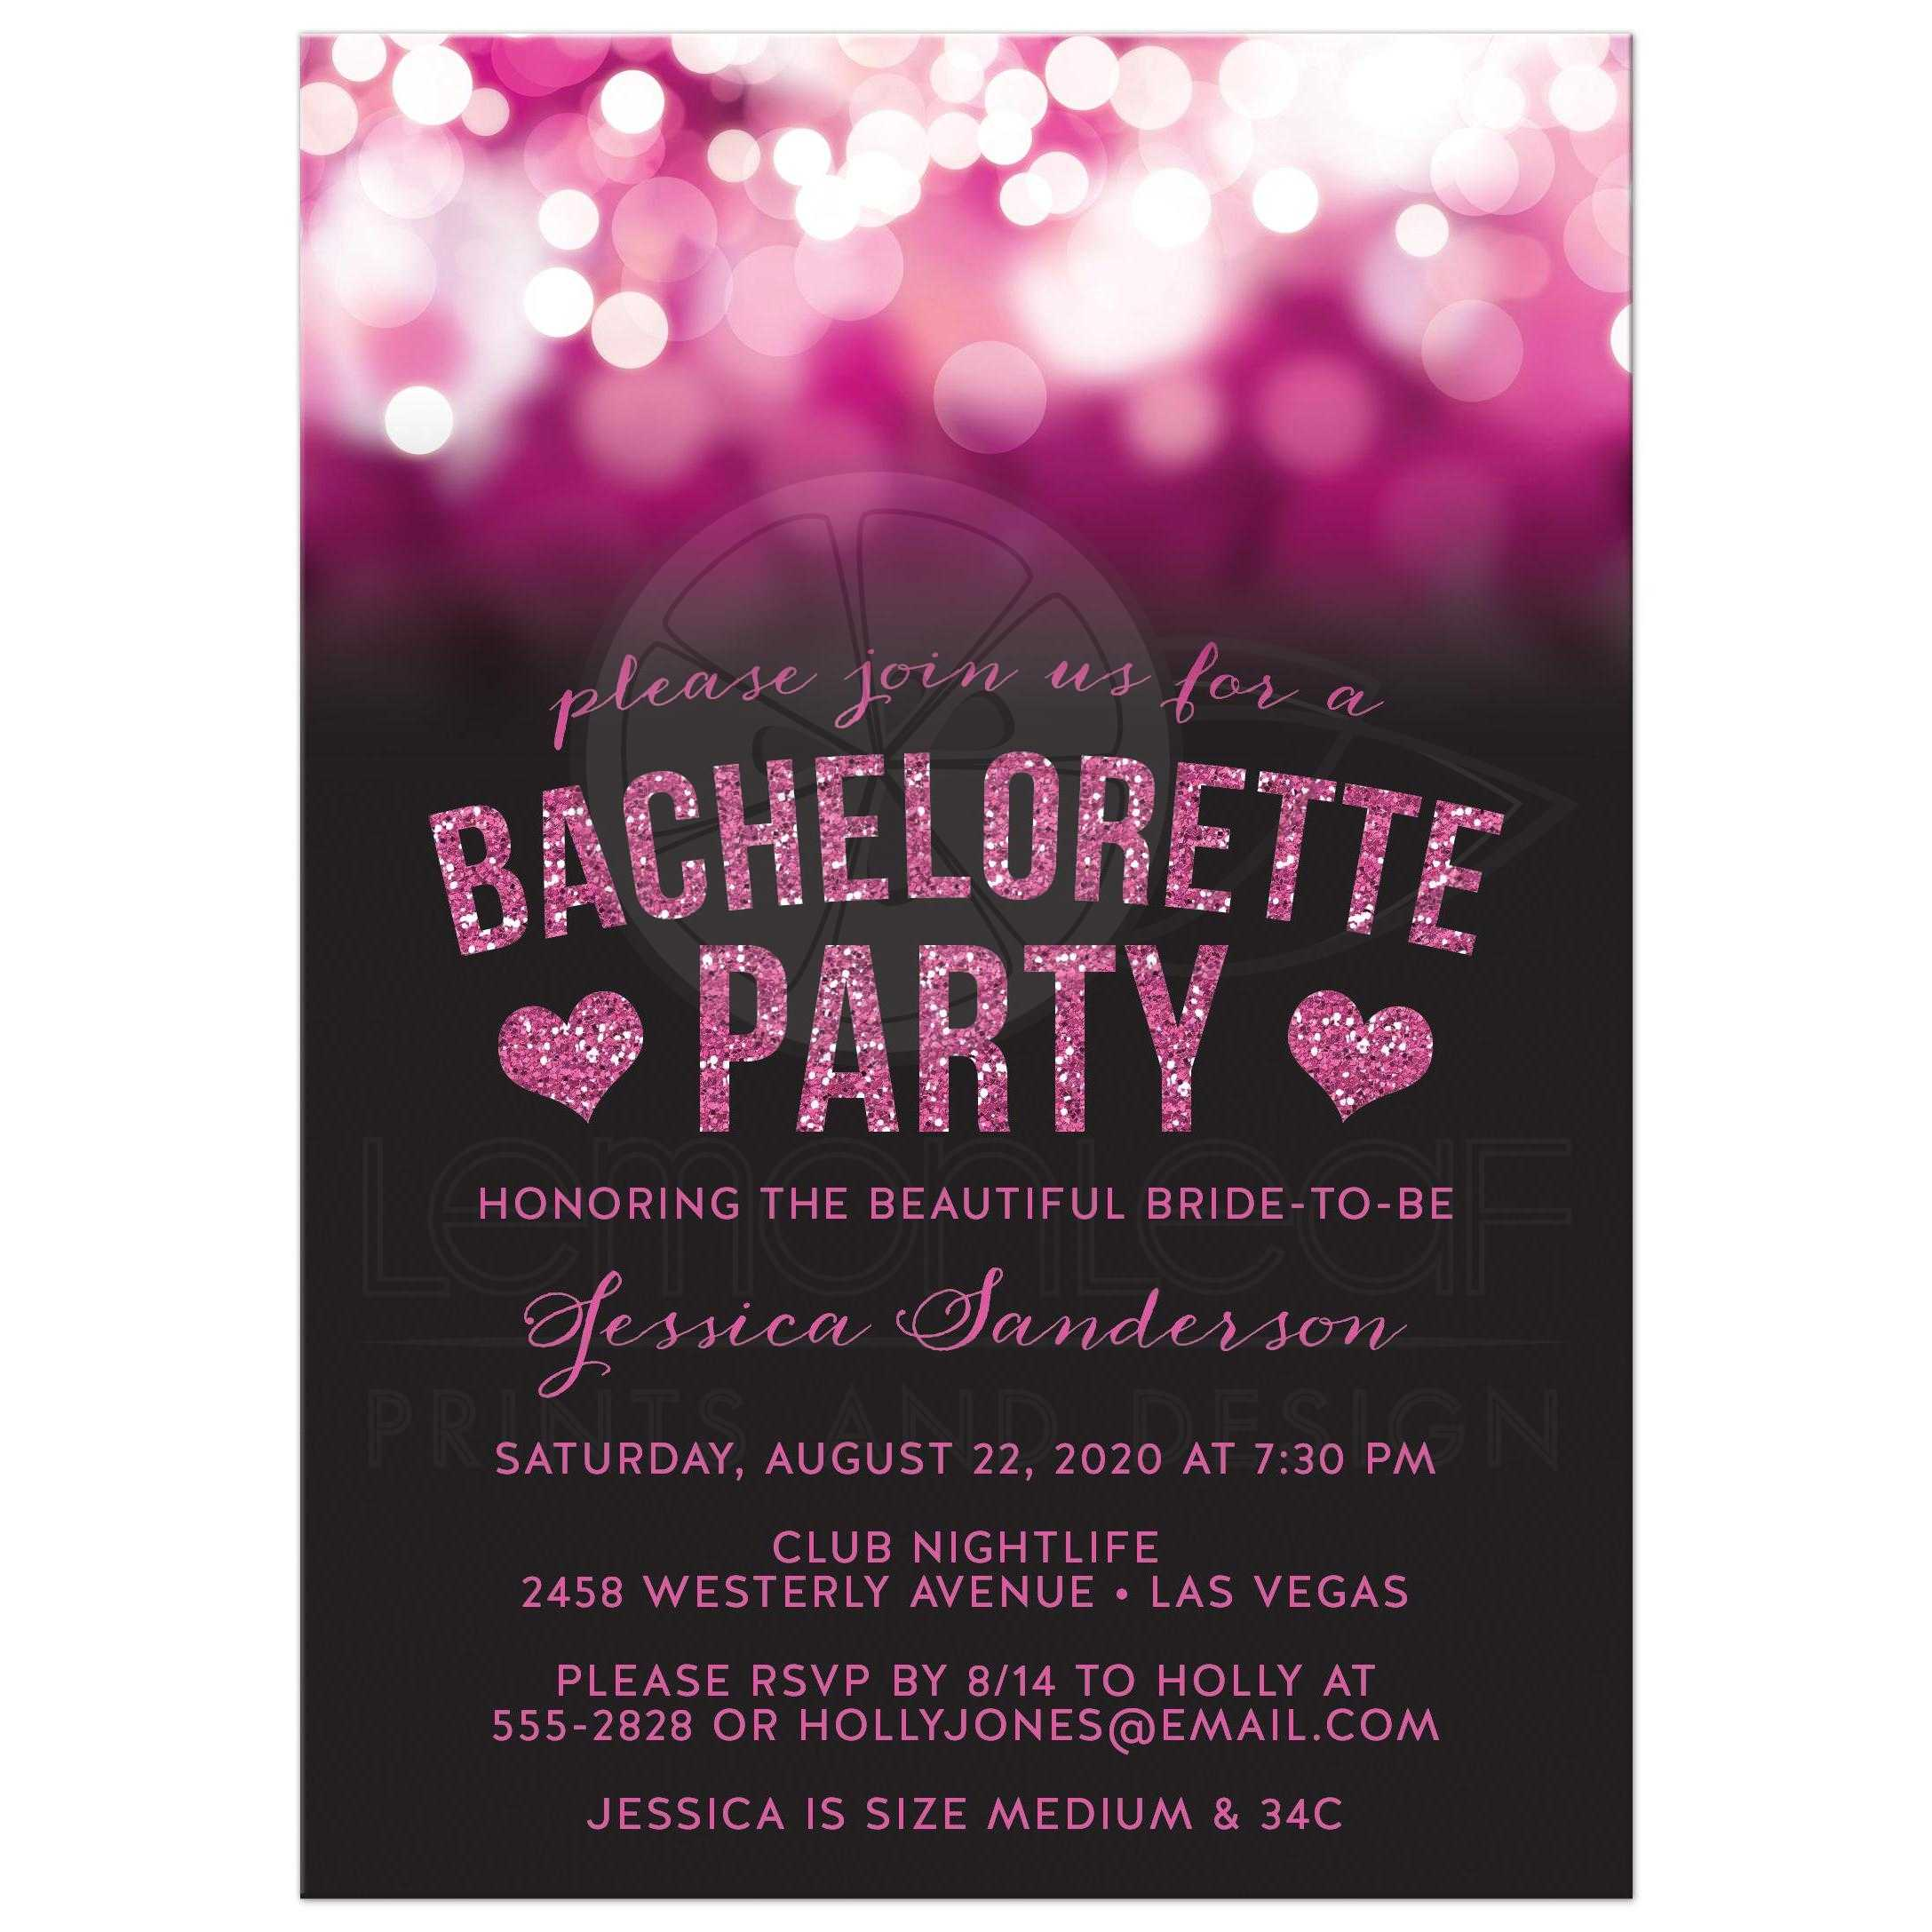 House Party Invitation is great invitations template